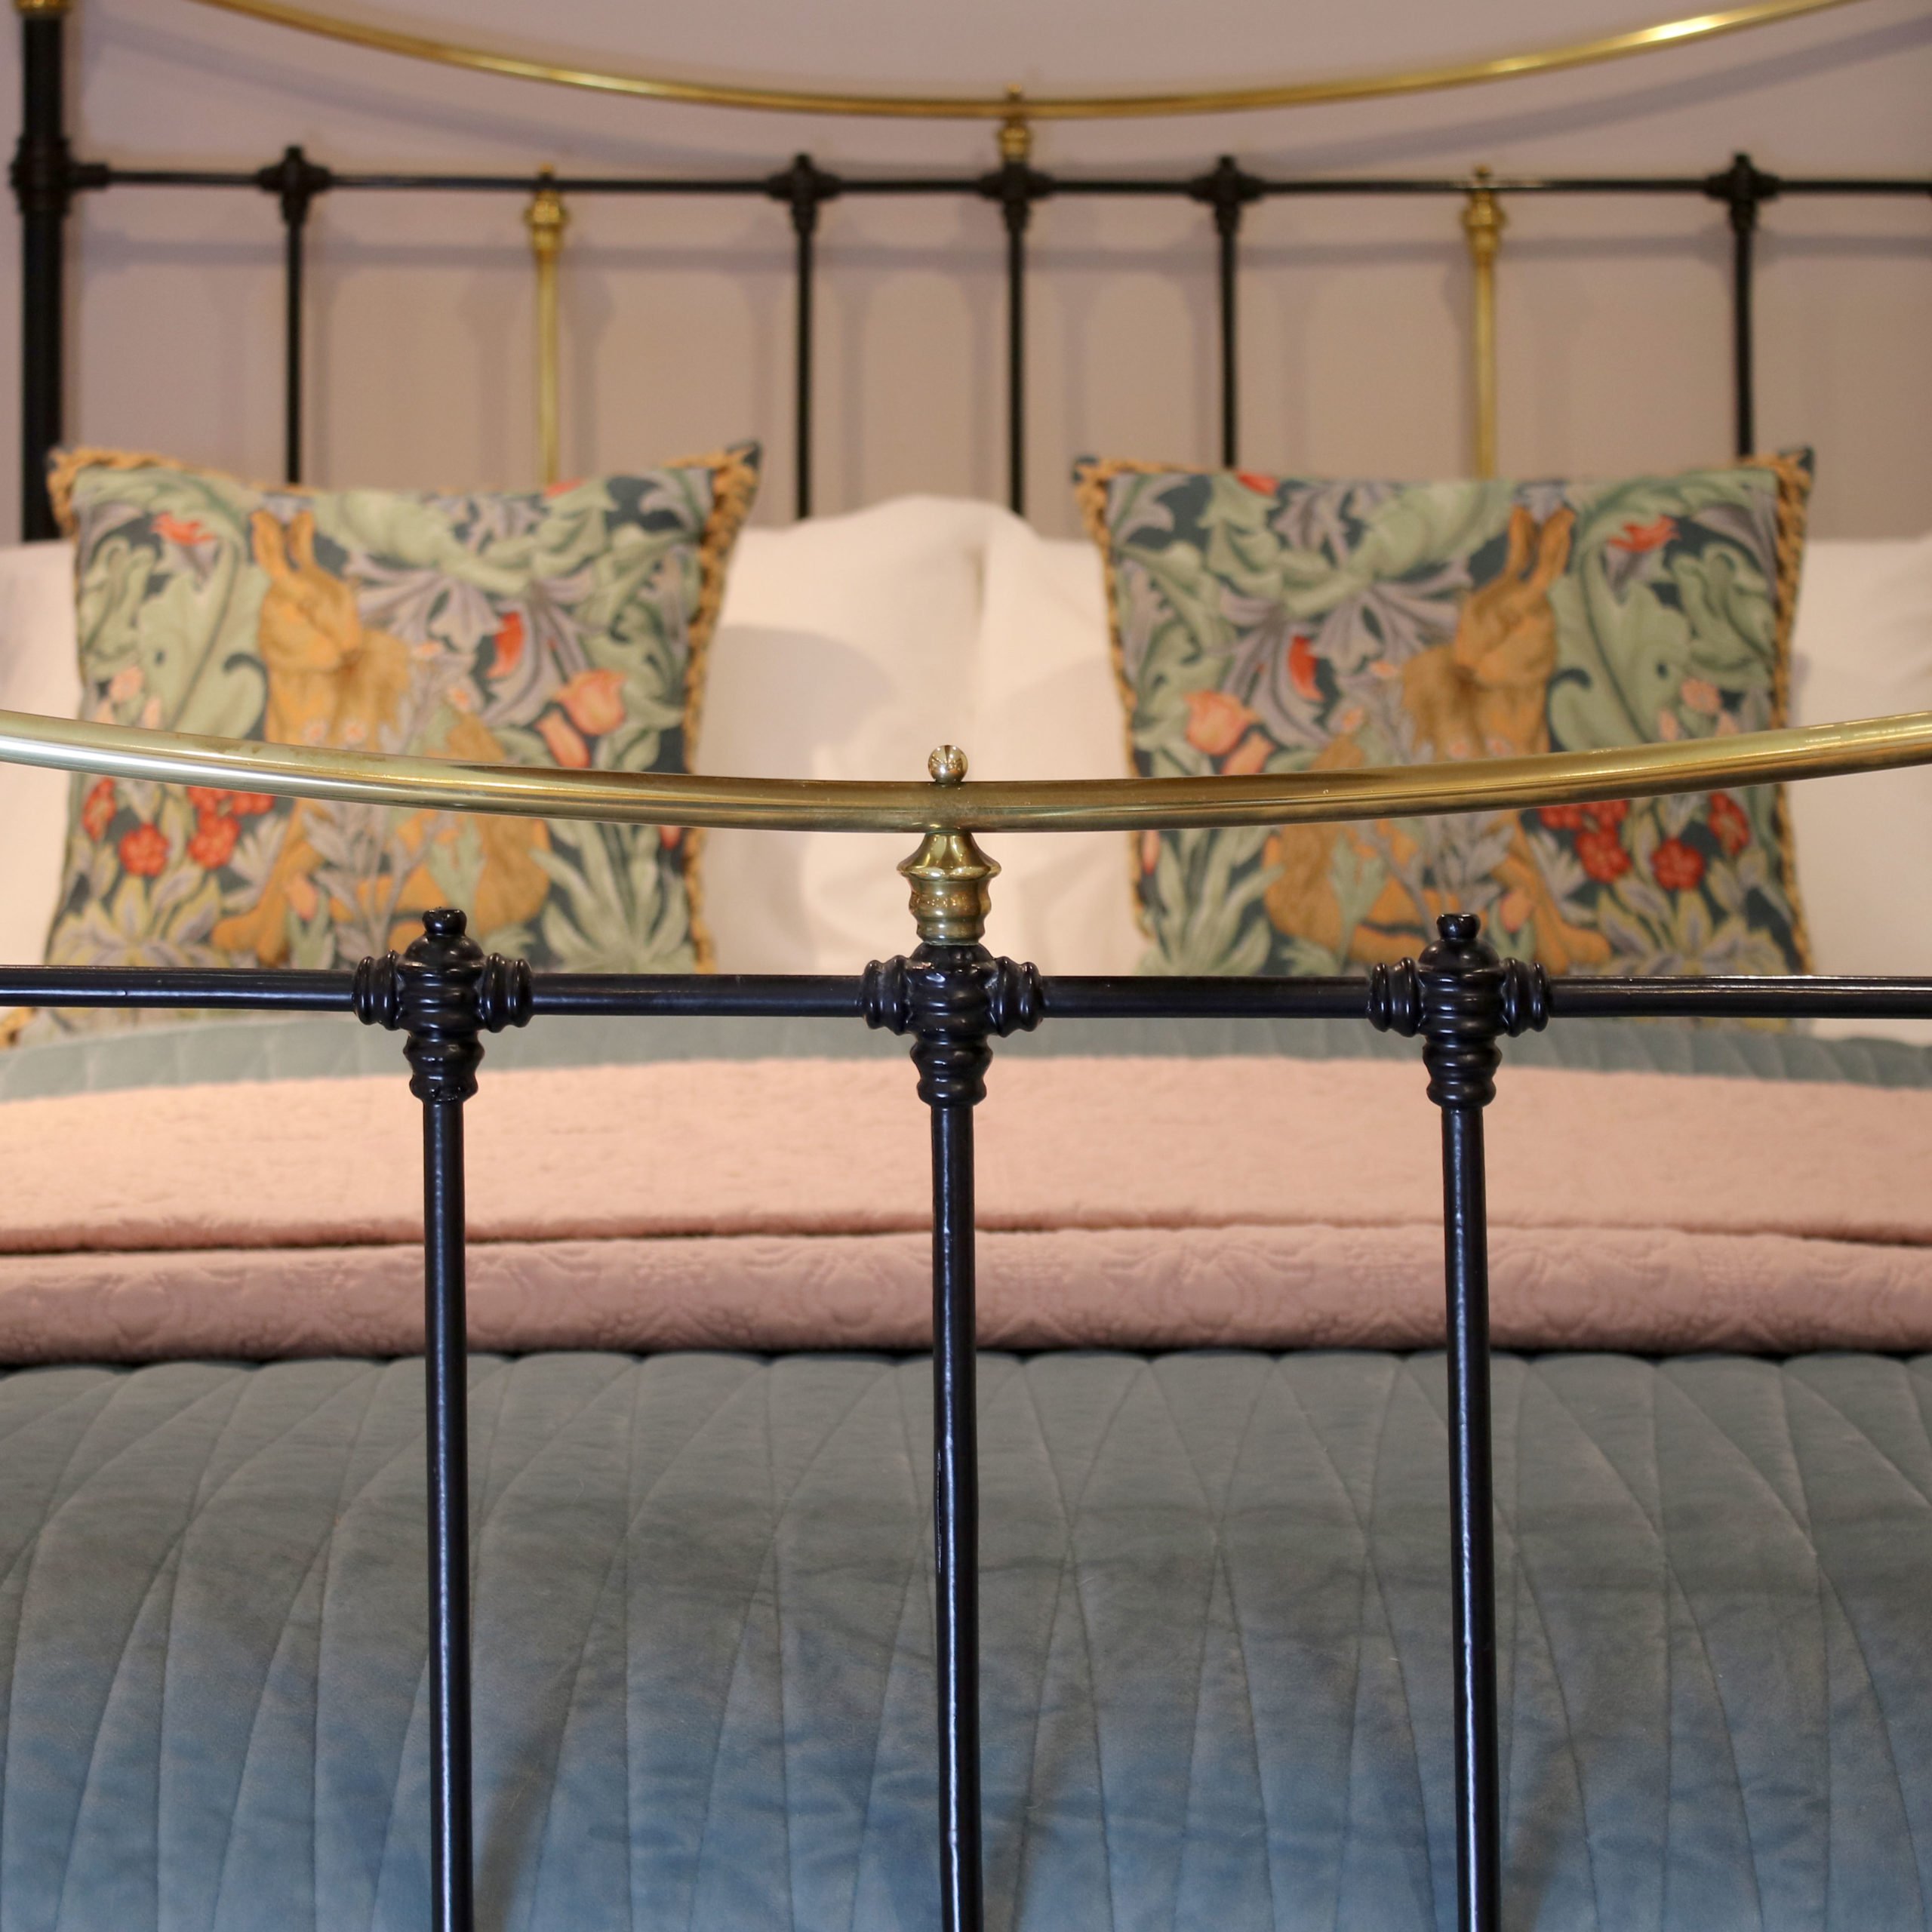 5ft-Black-Brass-and-Iron-Curved-Top-Rail-MK216-4